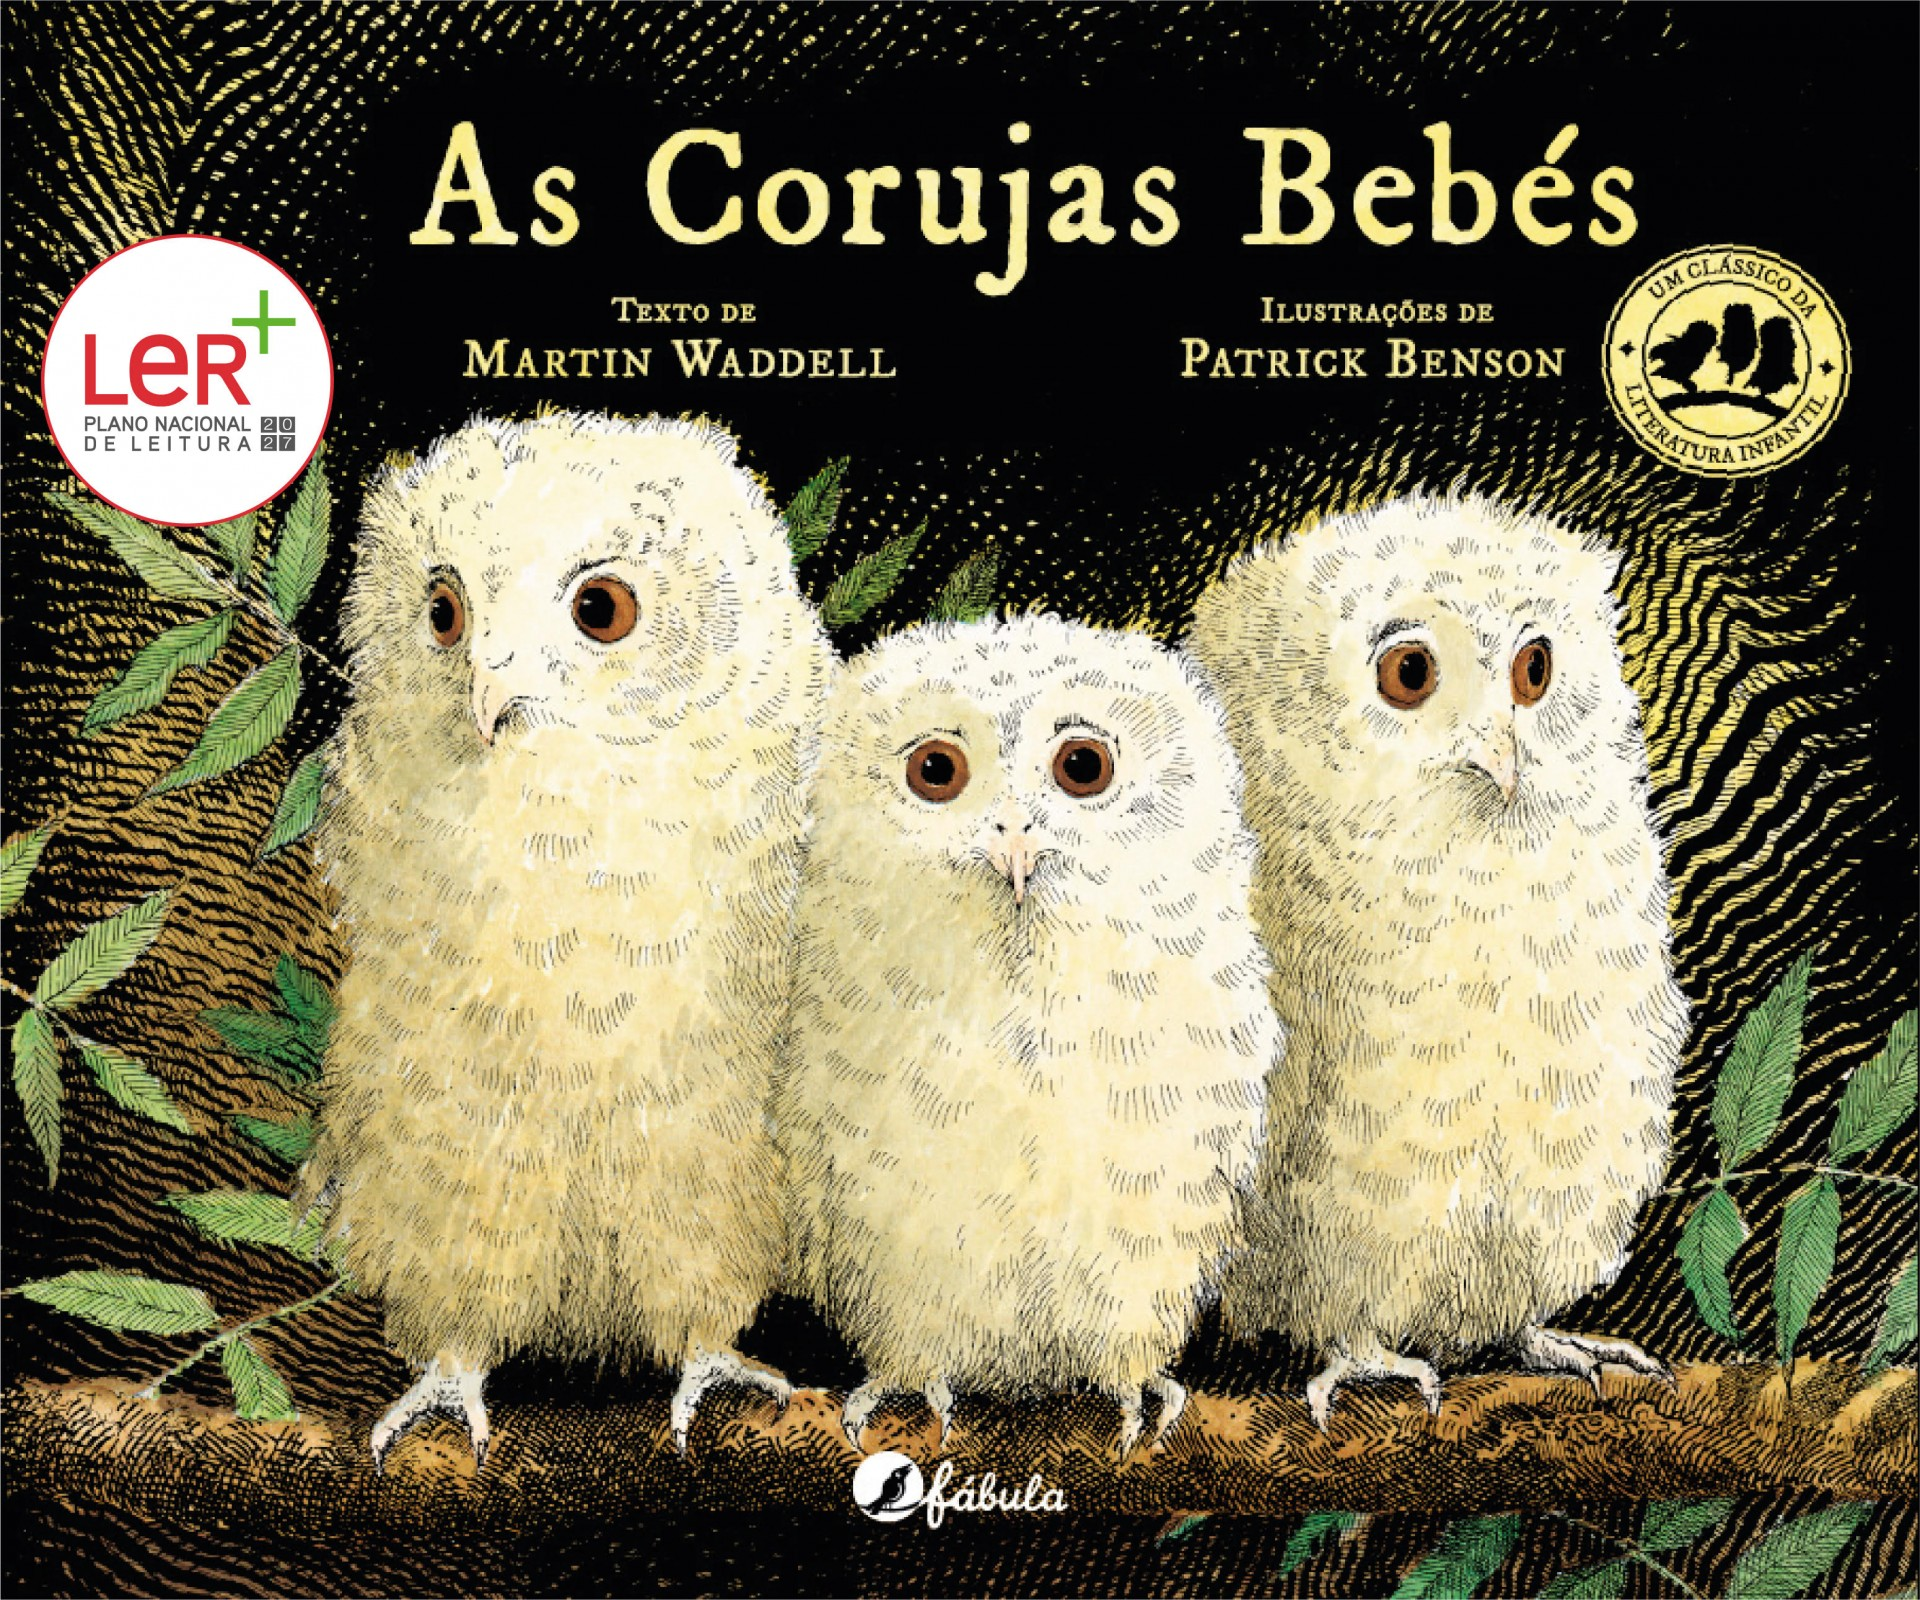 As Corujas Bebés